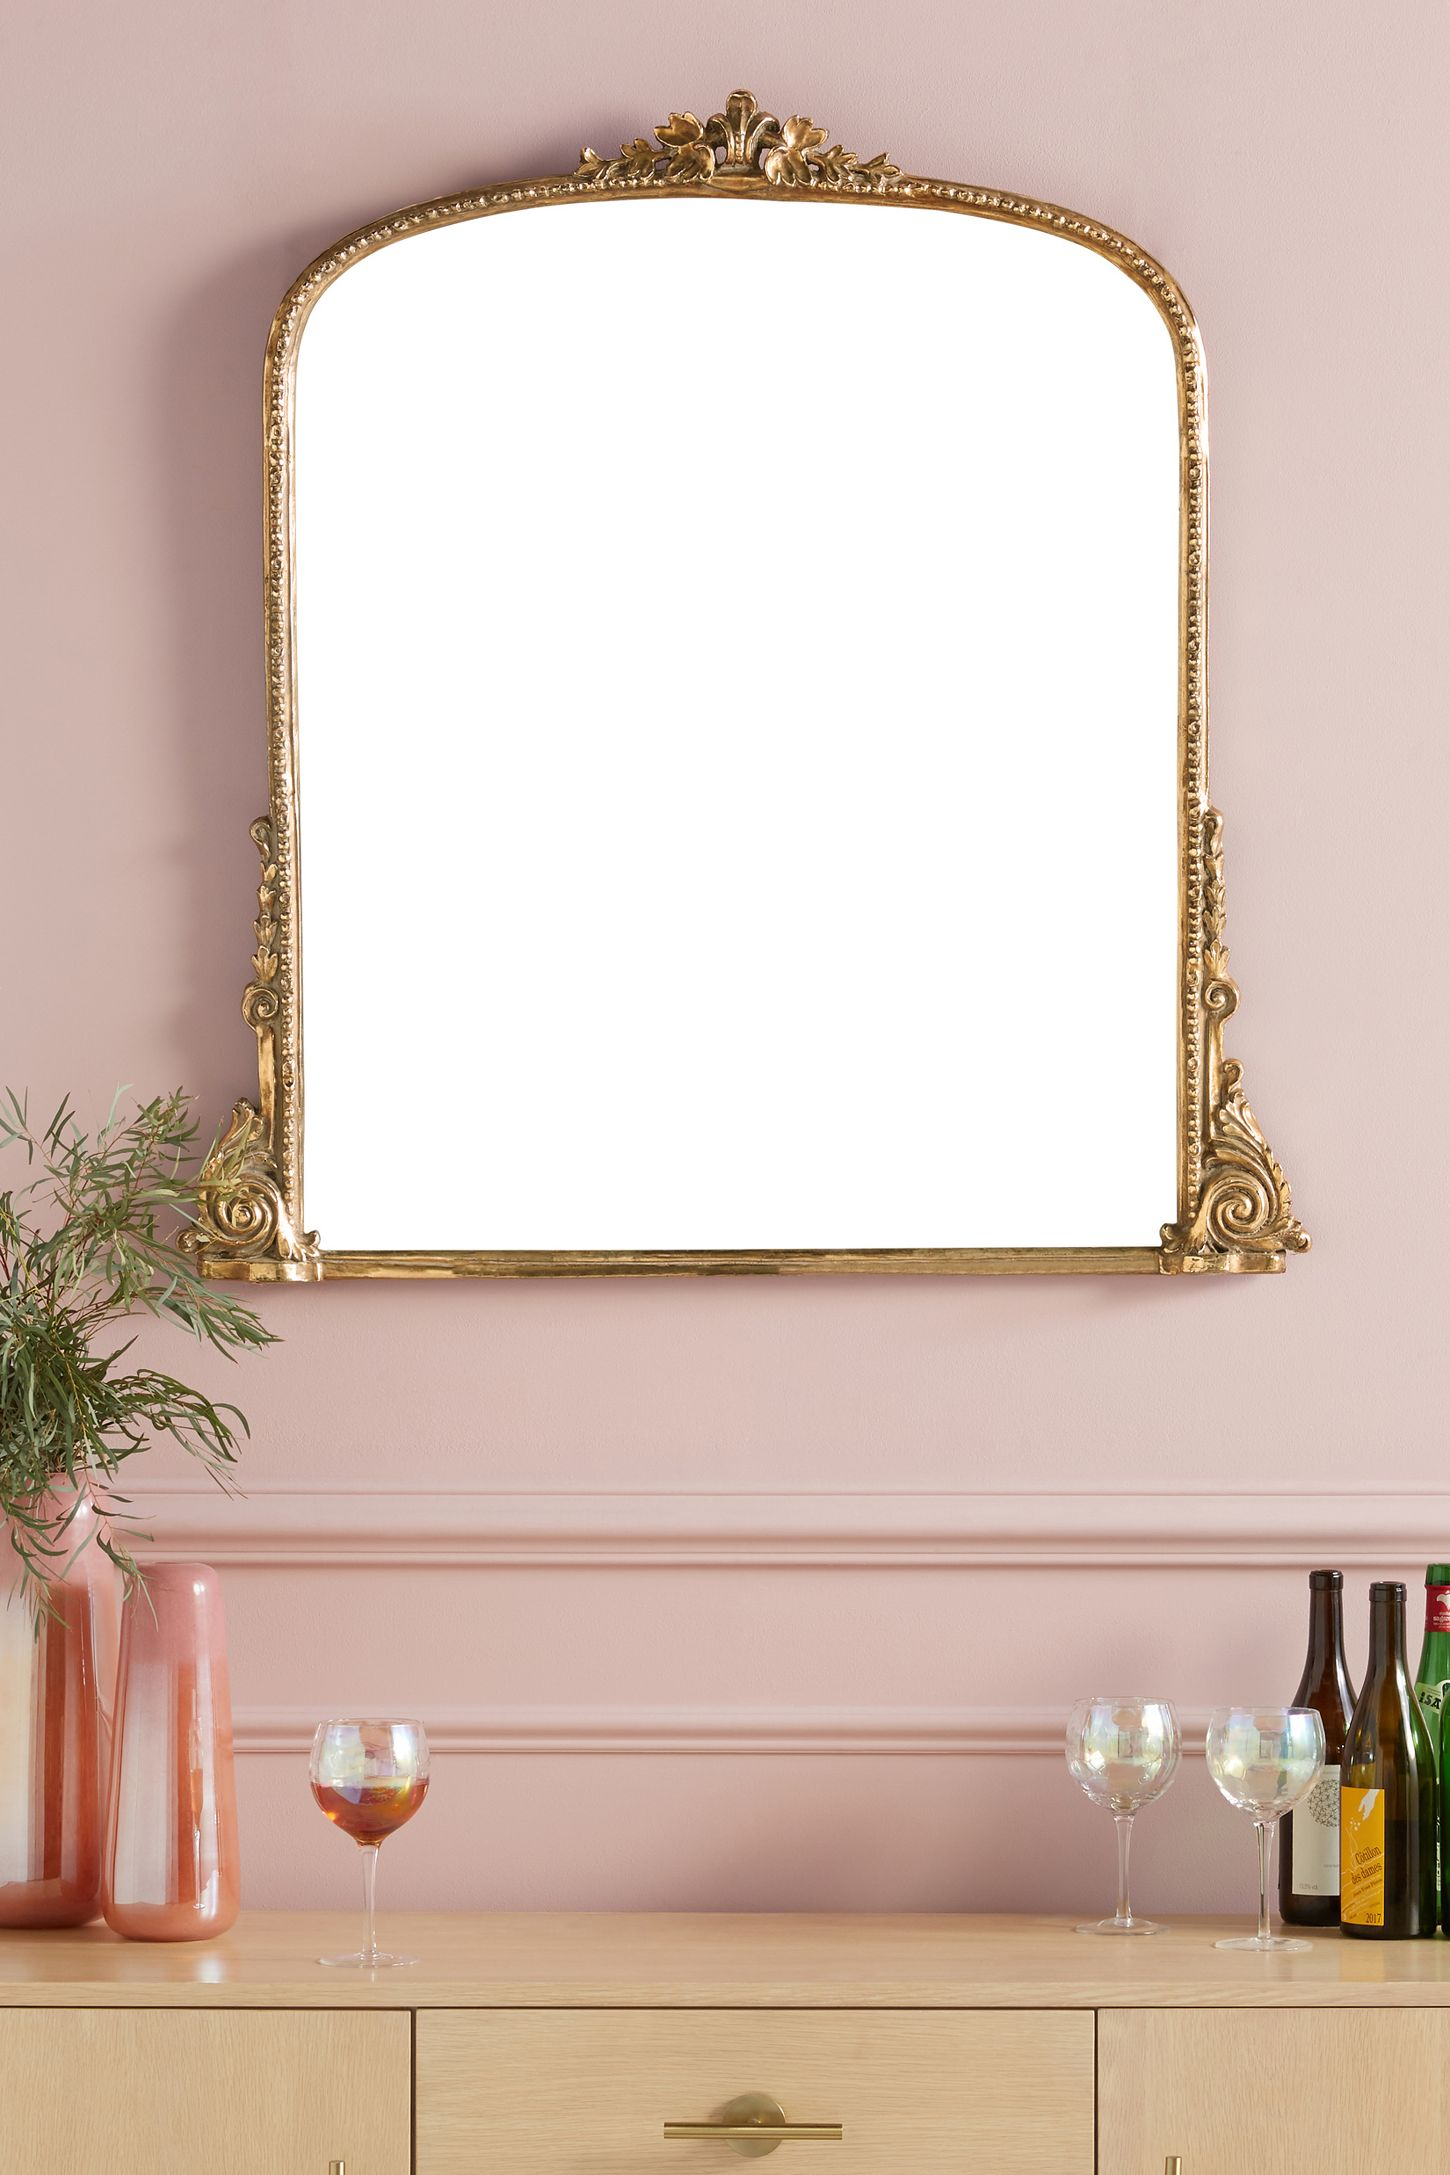 Shop decorative mirrors anthropologie gleaming primrose mirror amipublicfo Gallery